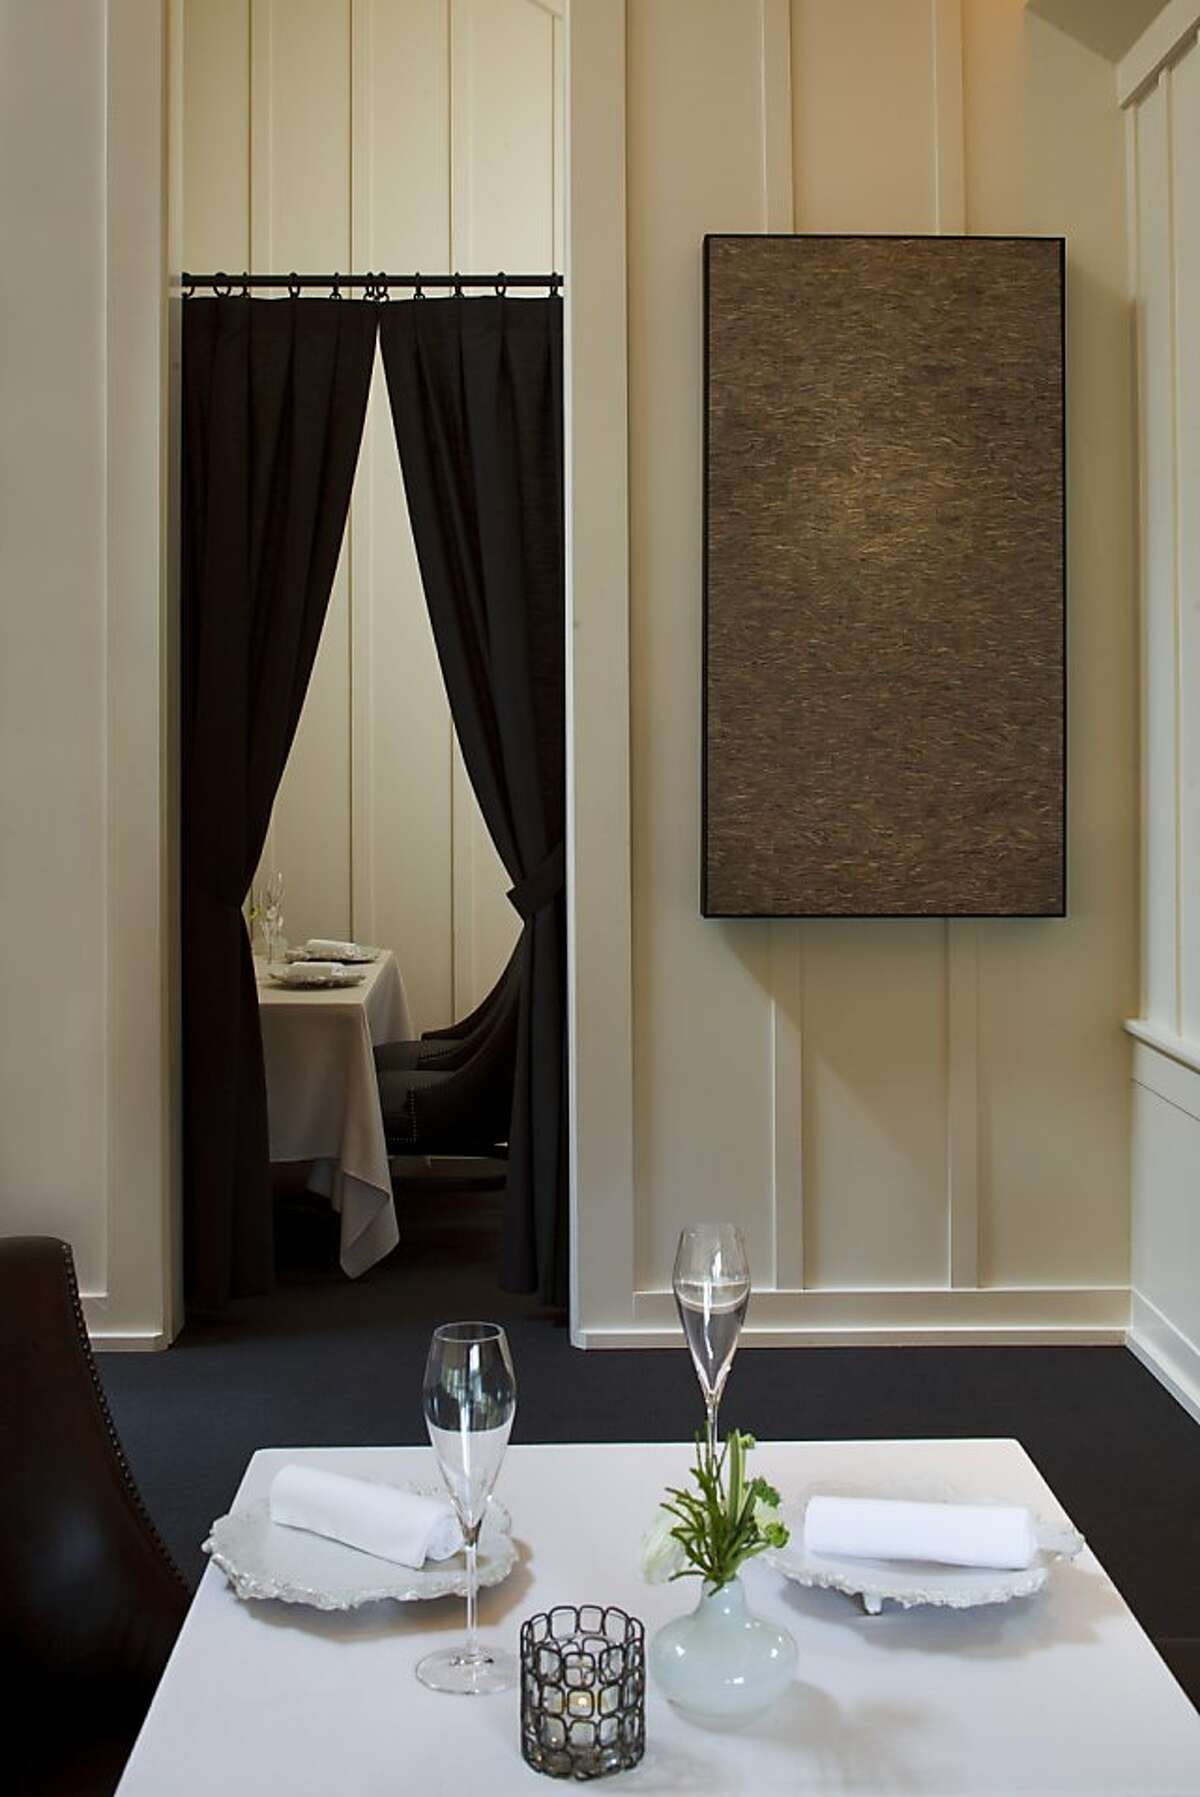 Artwork by Jonah Ward, known as wasp nest, hangs in the main dining room of the Meadowood Resort dining room. The small, private dining area can be seen through the parted curtains.